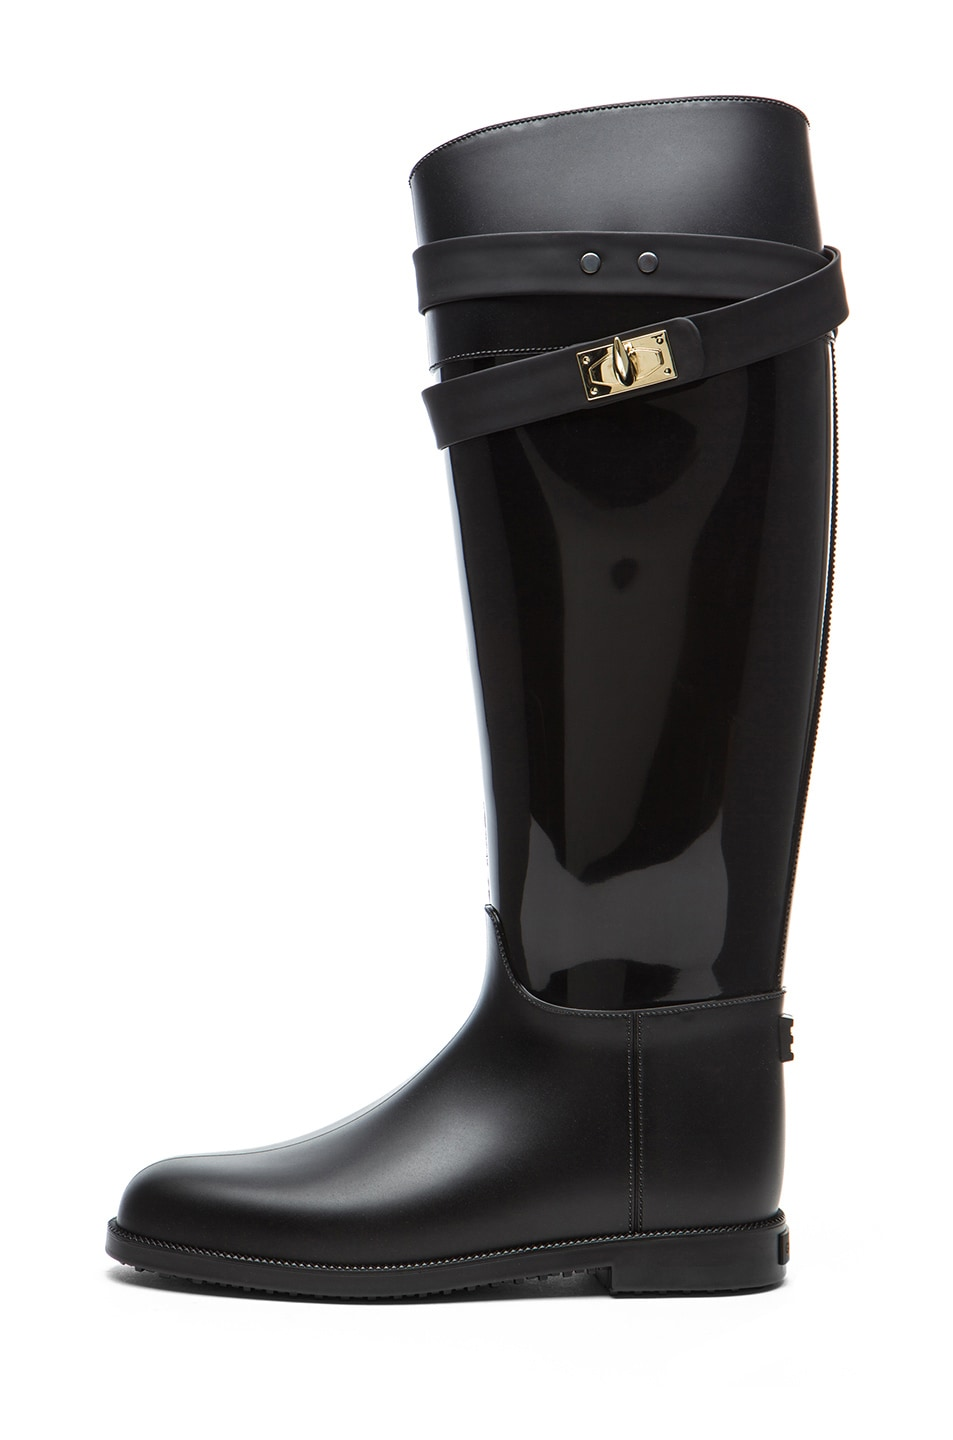 Image 1 of GIVENCHY Rider Shark Lock Rubber Rain Boot in Black